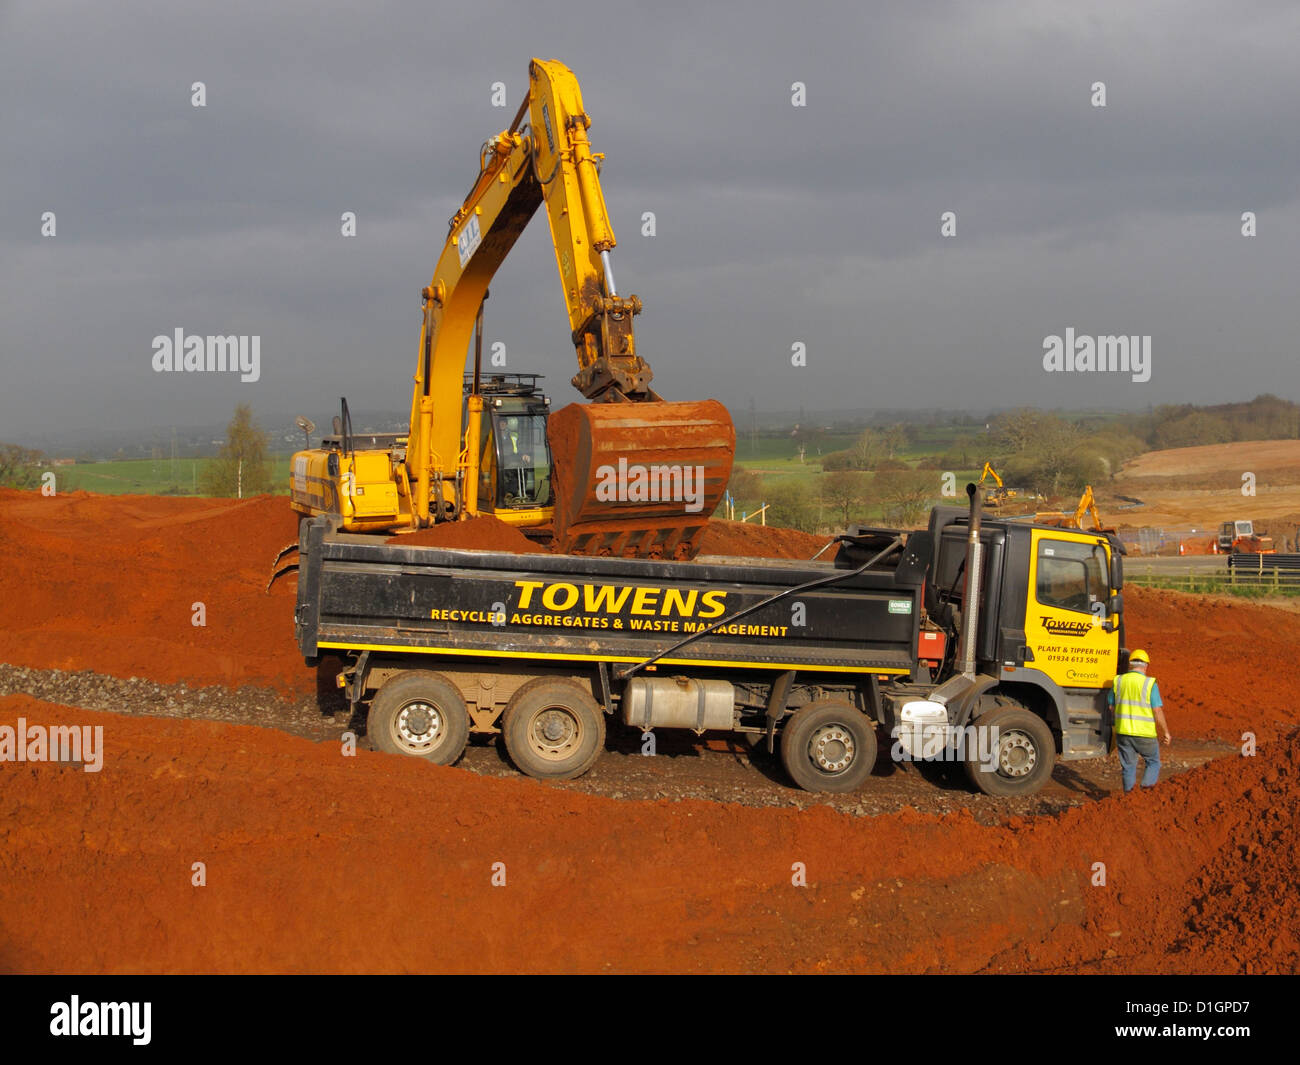 Highway 220 Stock Photos & Highway 220 Stock Images - Alamy